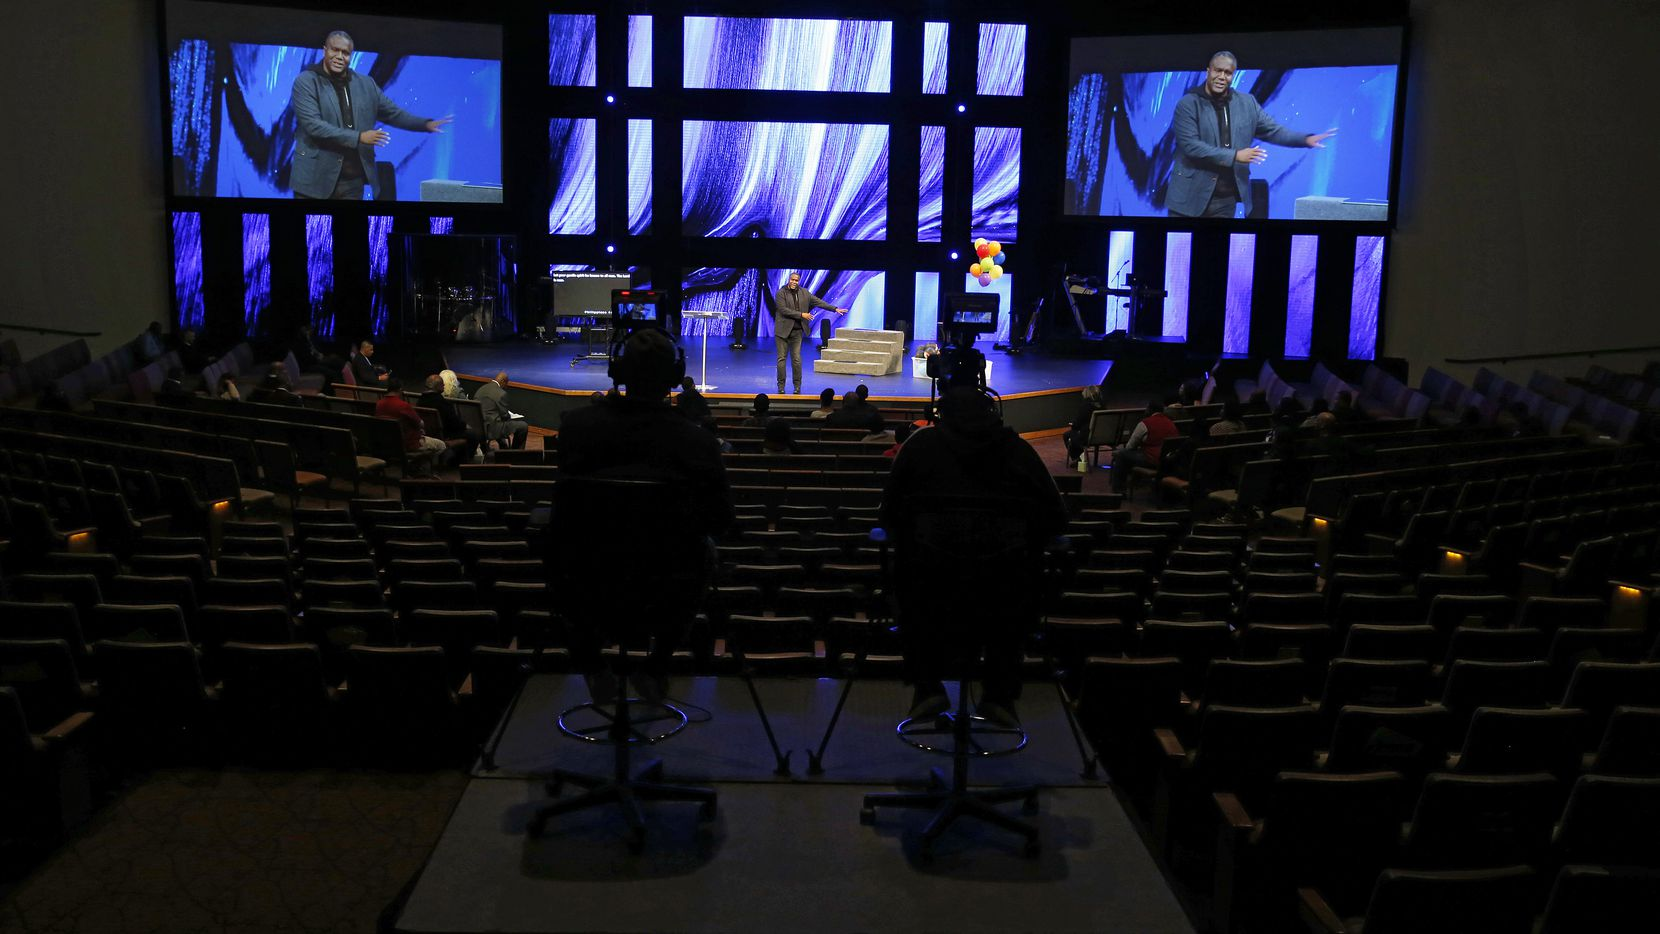 """One Community Church is a 10,000-member megachurch with campuses in Dallas, Lewisville, Plano and Prosper. But there was nothing """"mega"""" about attendance at the Plano campus on Sunday as the church's lead pastor, Conway Edwards, preached before a small group of congregational leaders during a service that was live-streamed for worshippers."""